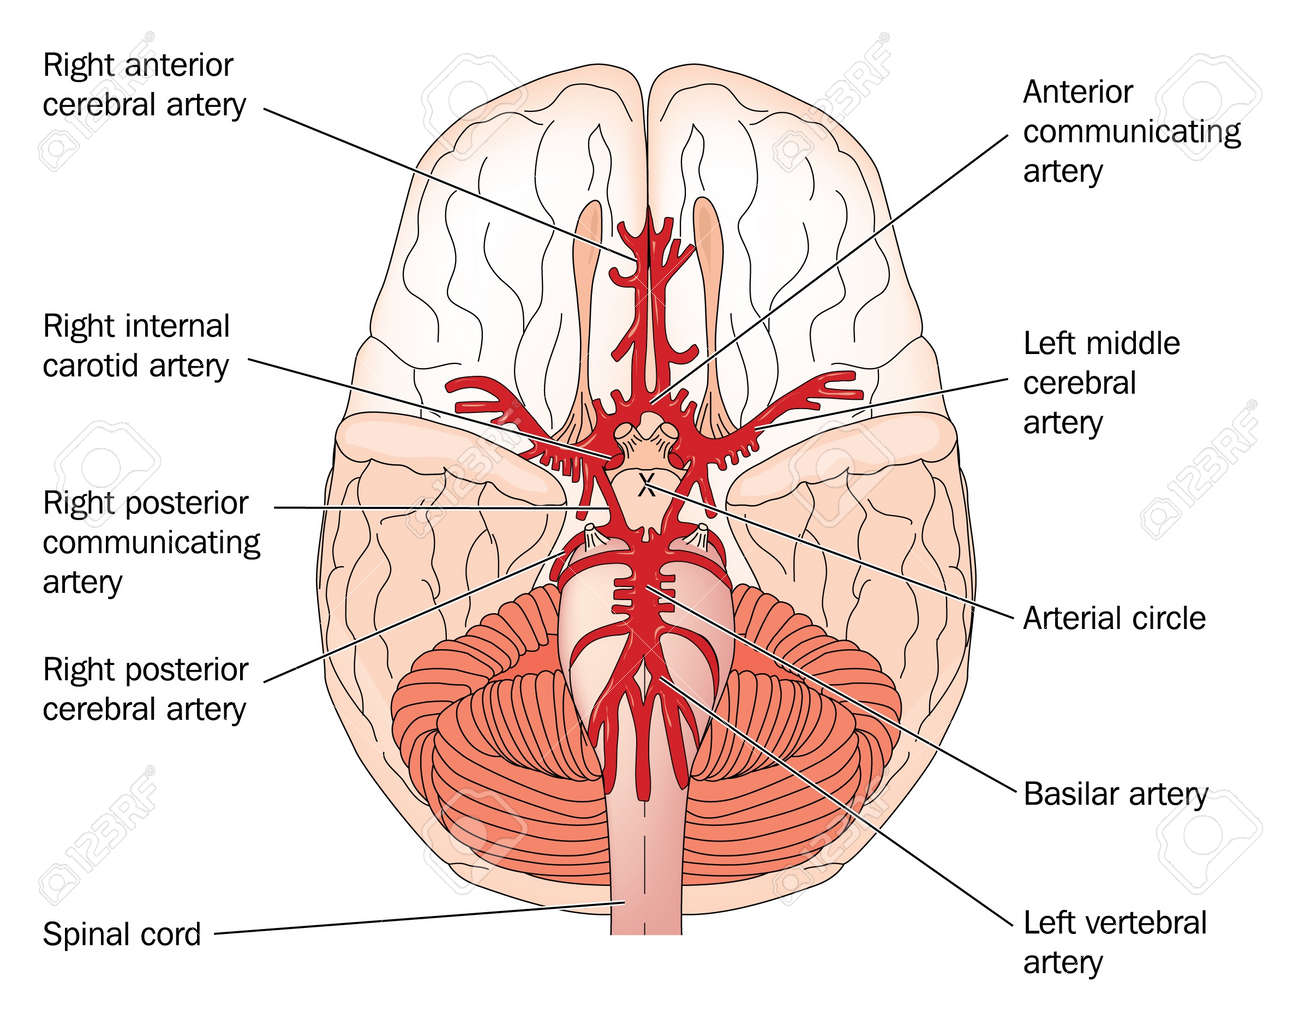 Drawing Of The Blood Vessels At The Base Of The Brain Called ...